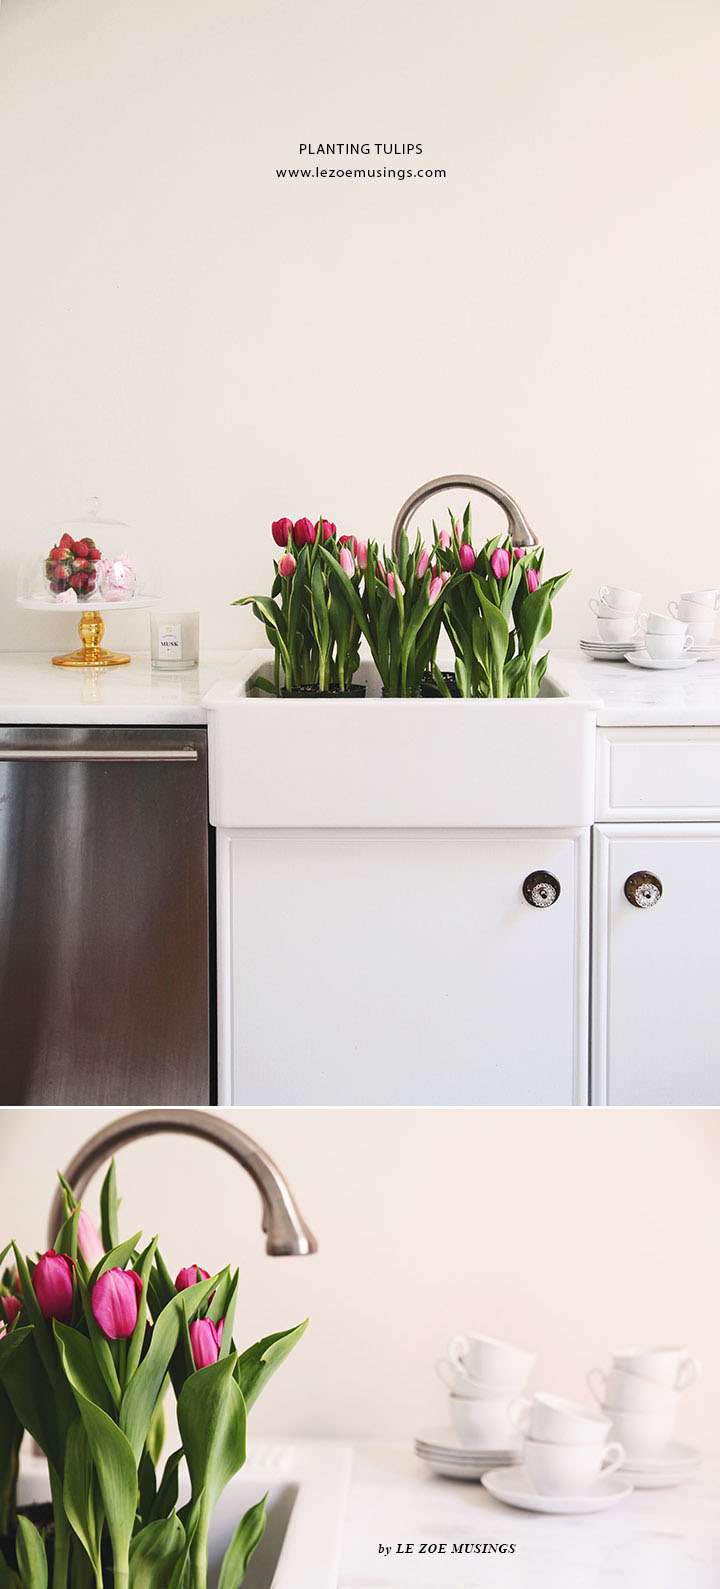 Spring Tulips in a White Kitchen by Le Zoe Musings 3